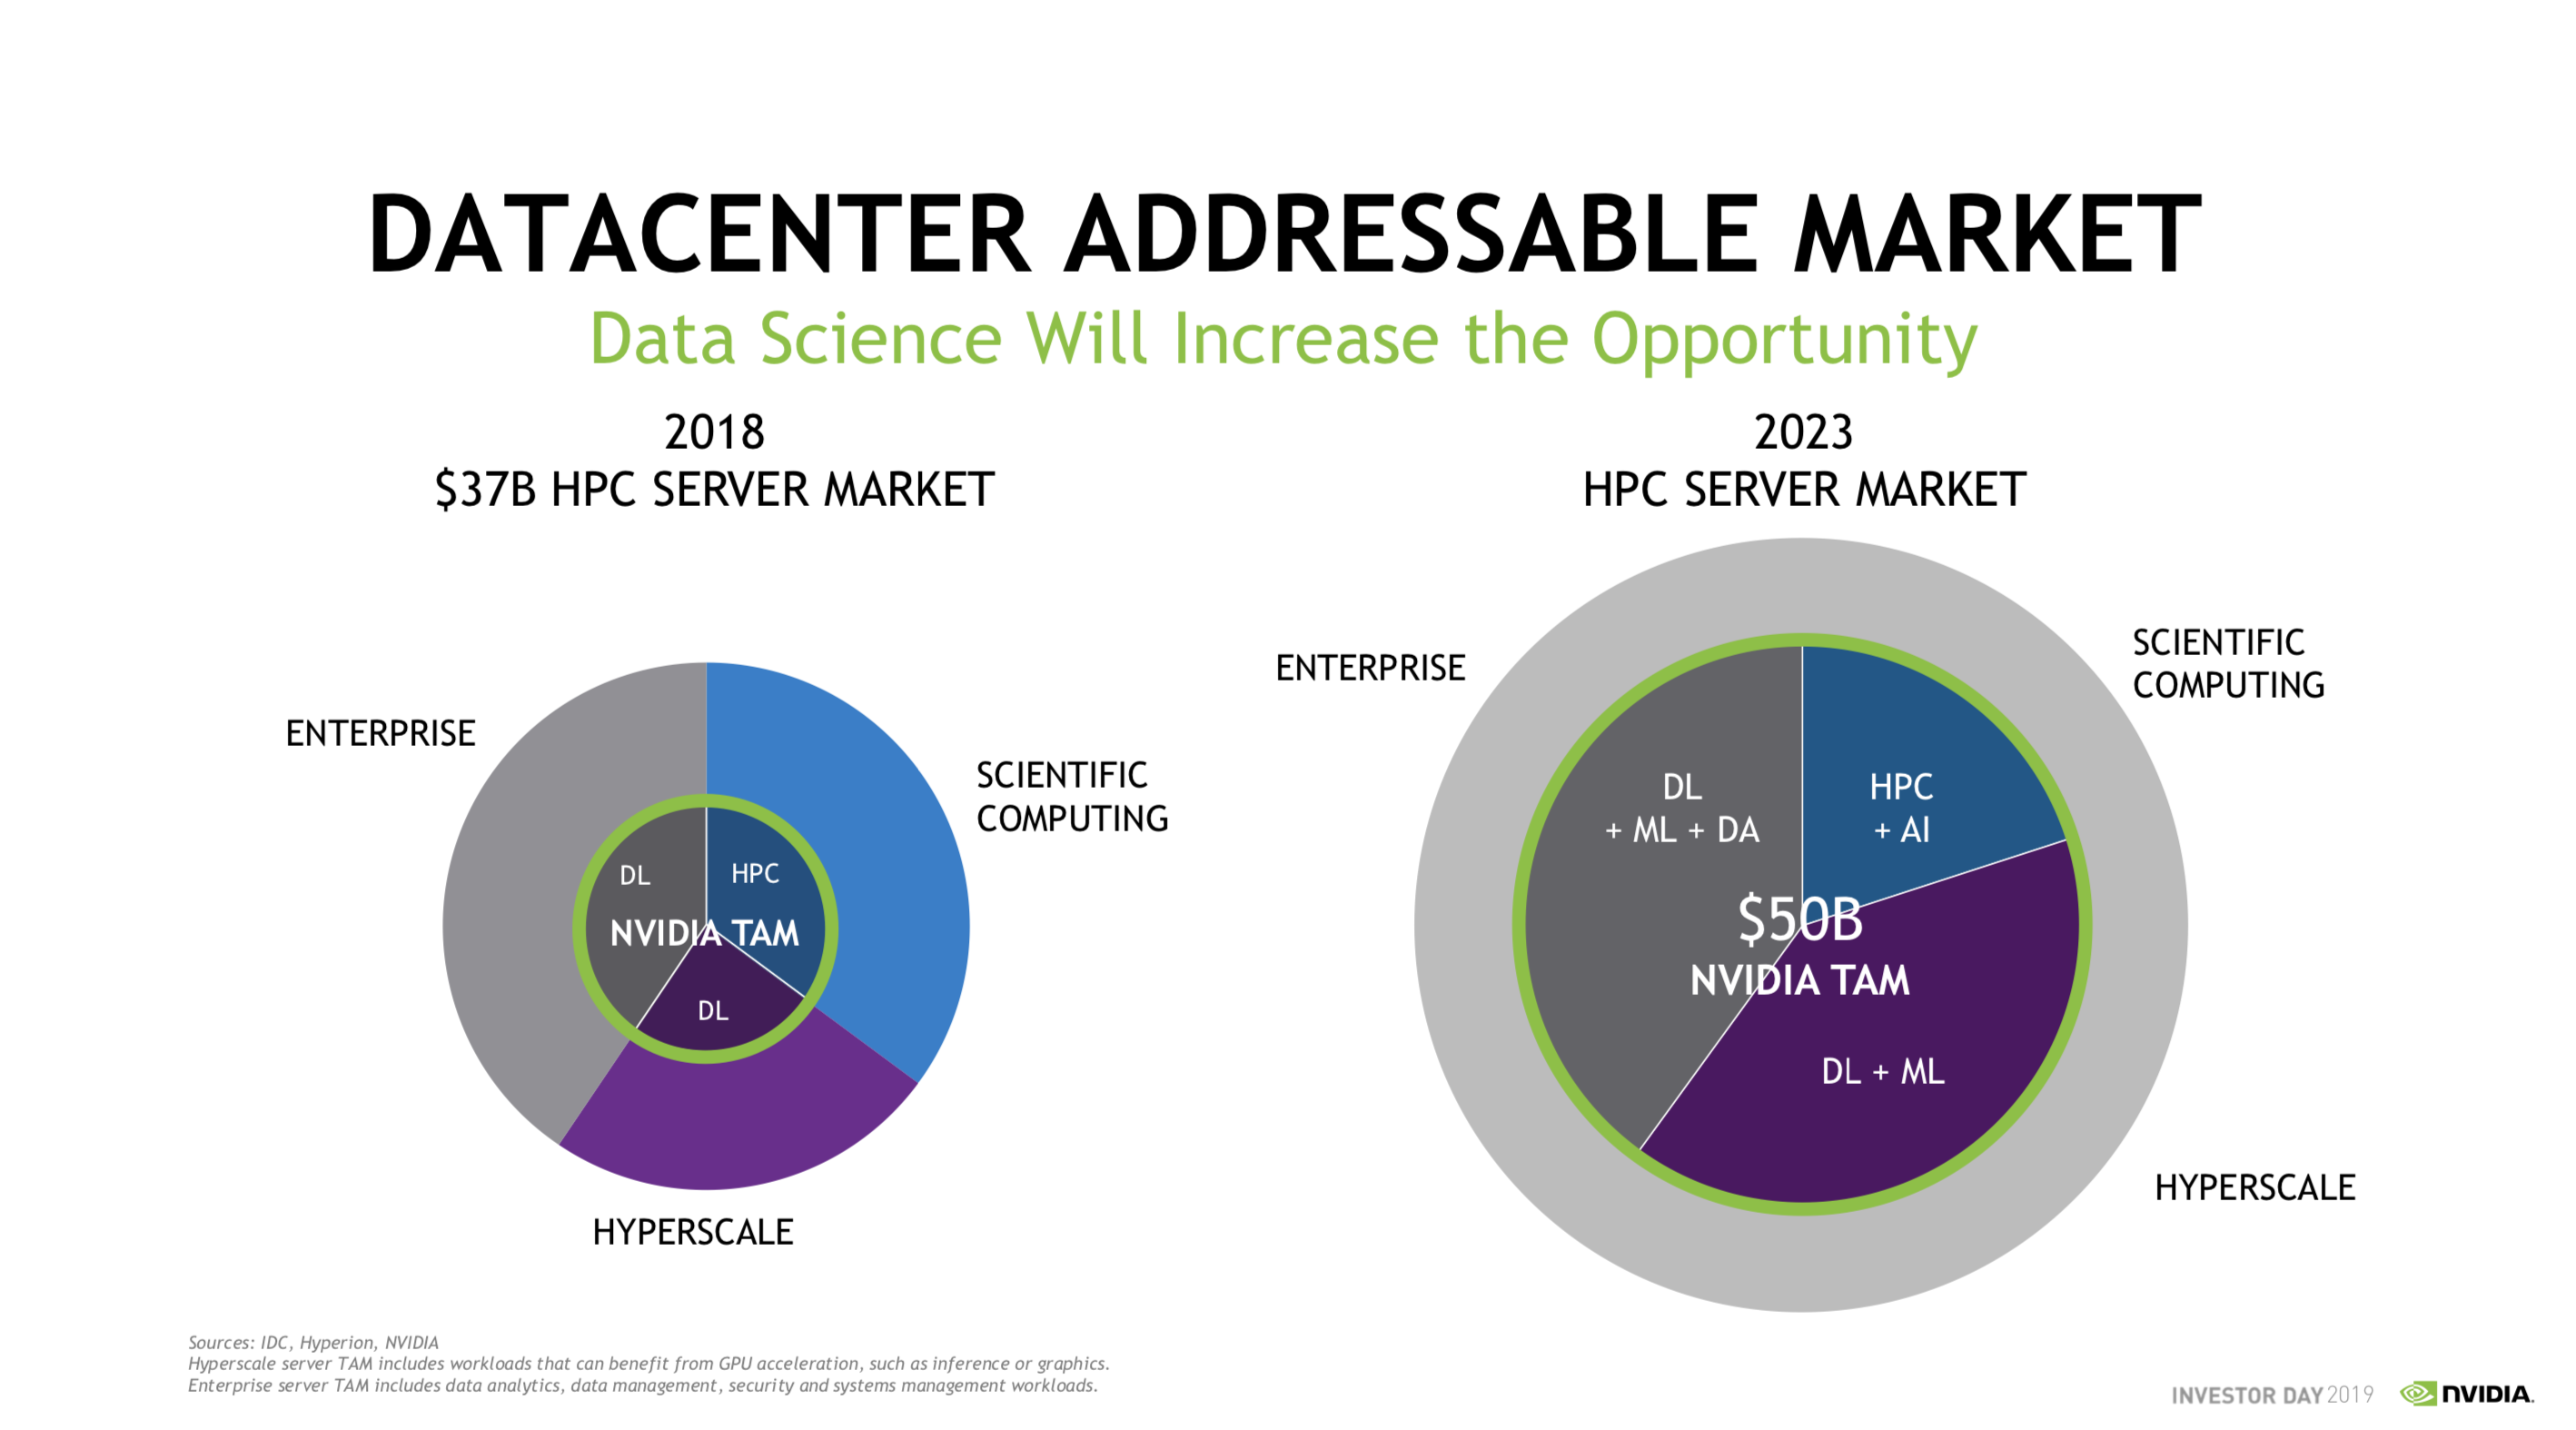 NVIDIA TAM estimates datacenter 2023